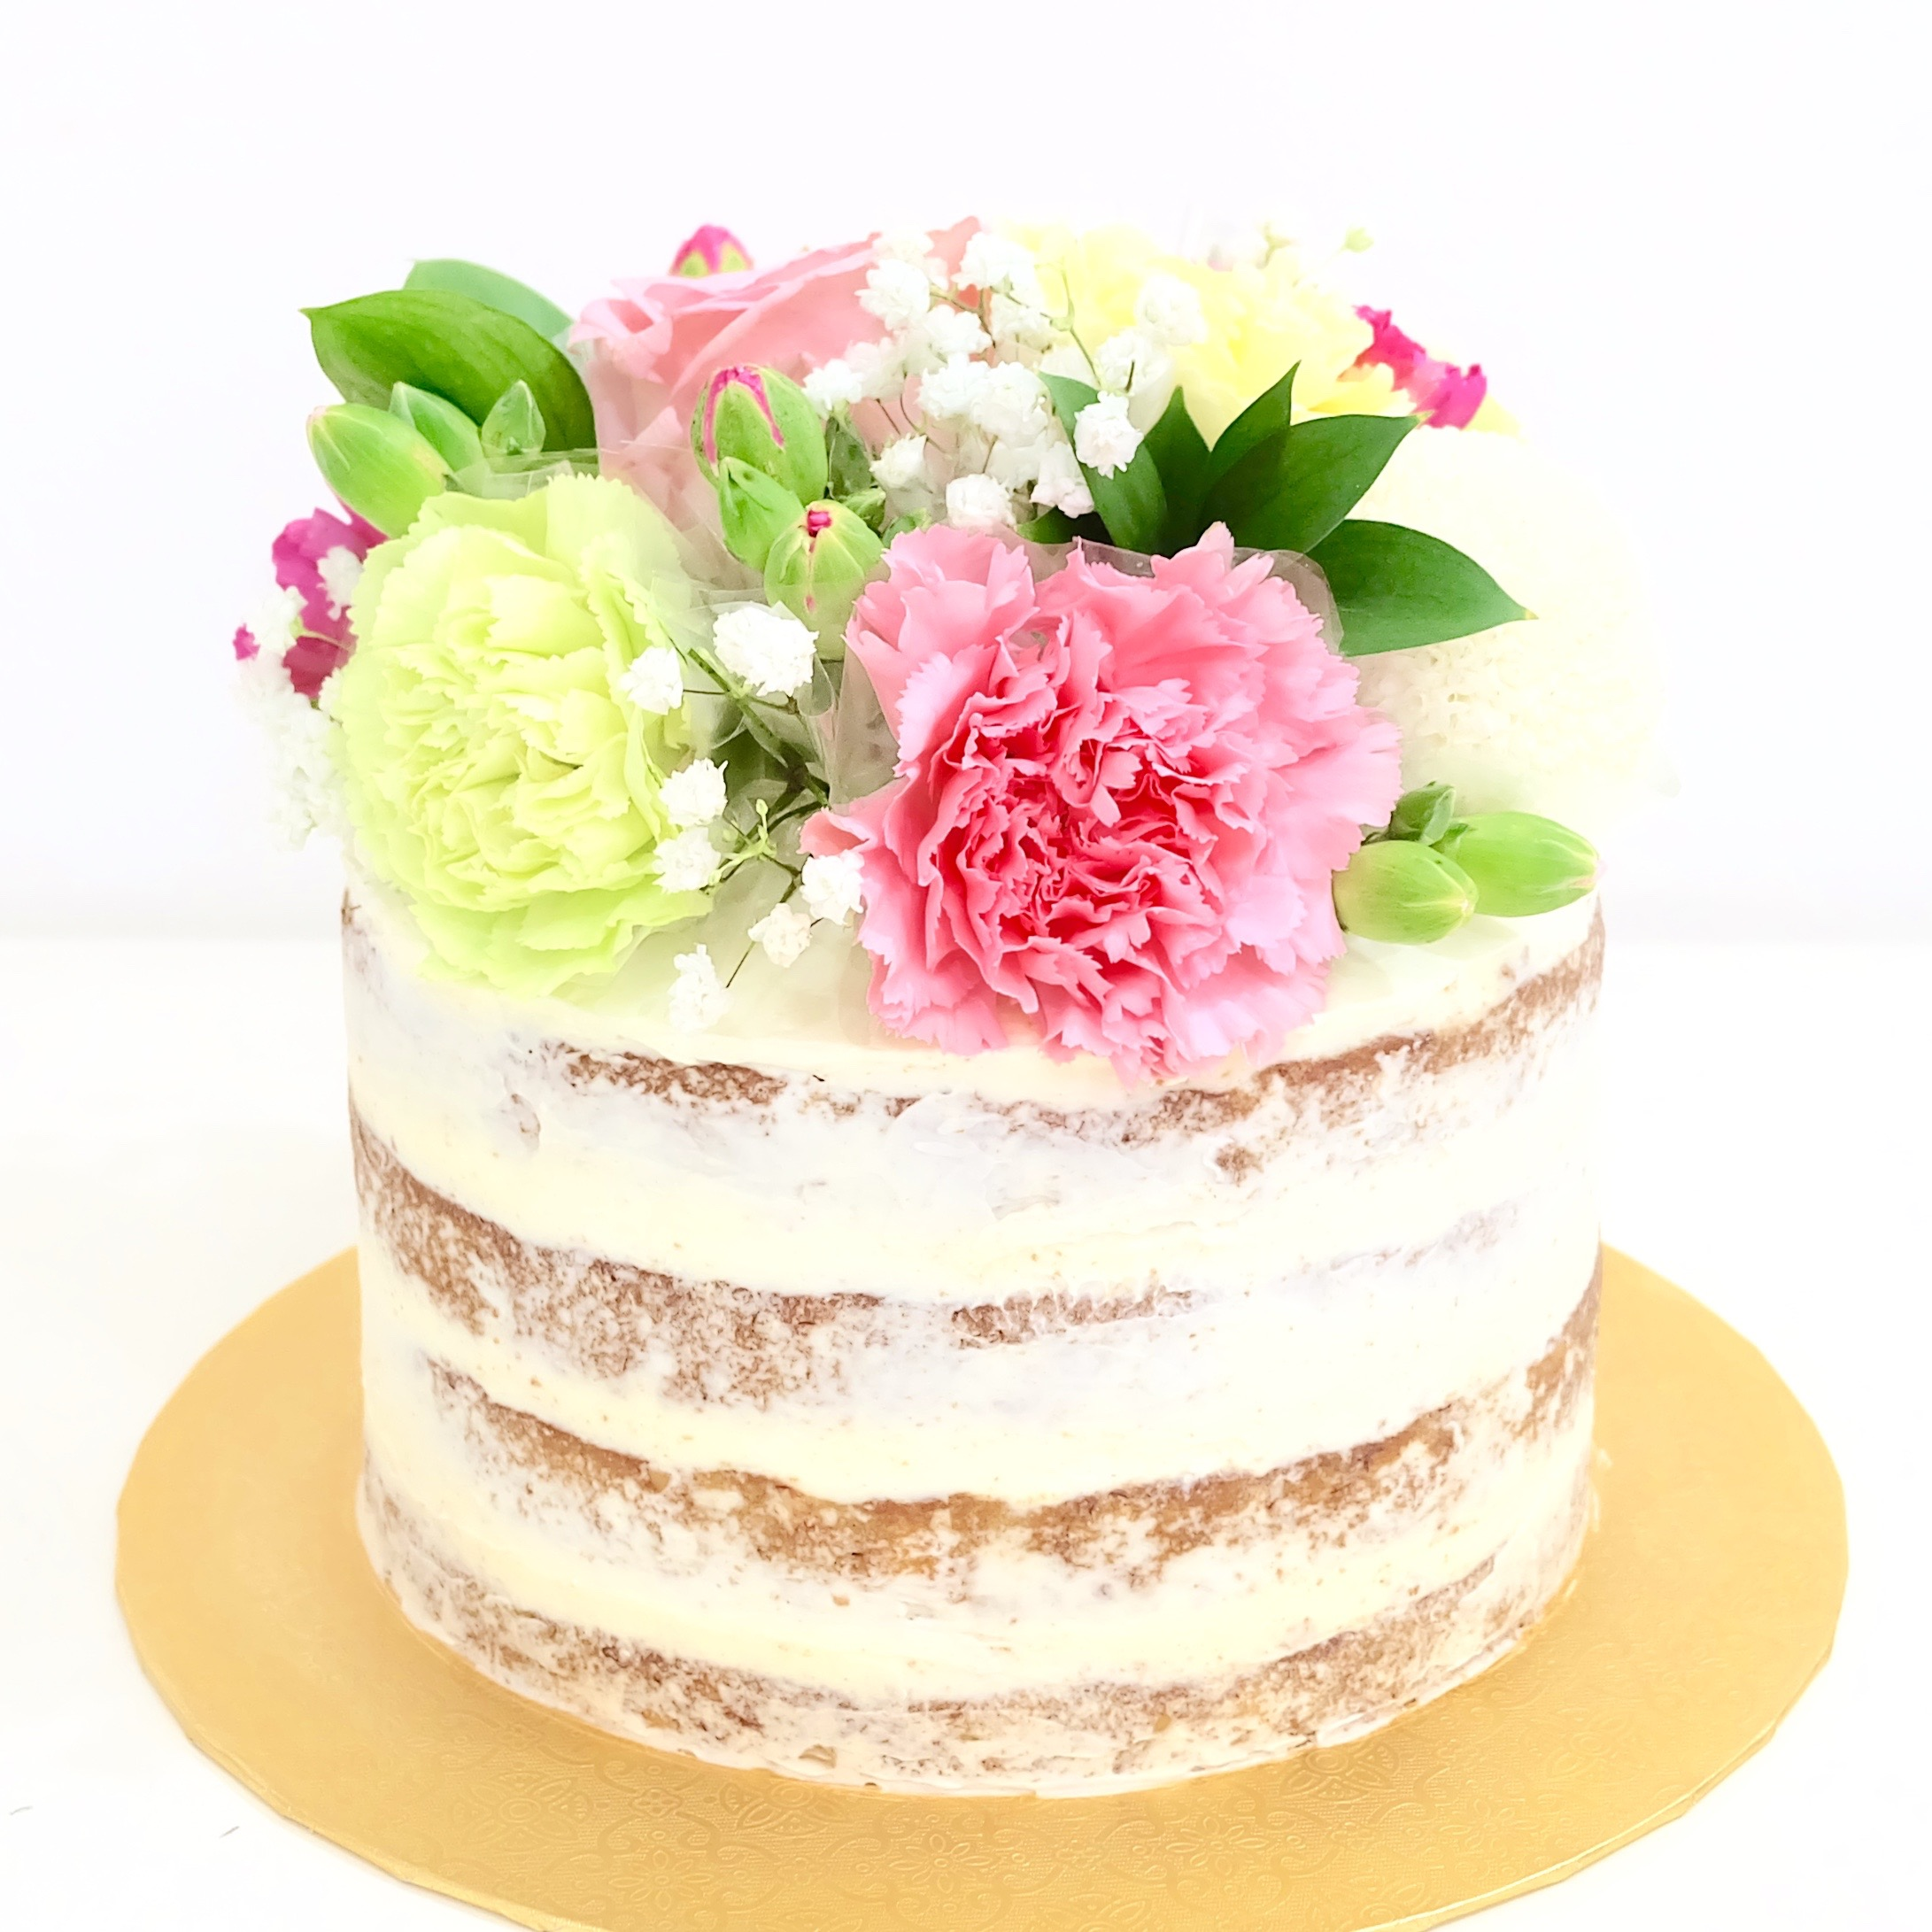 Fresh Flower Cake - Ø 18 cm - Rp.800.000,-Ø22 cm - Rp. 1.200.000,-Ø26 cm - Rp. 1.600.000,-Our standard fresh flower cake is a four-layer naked cake decorated with handpicked arrangement of fresh flowers.The cake options are Carrot Cake,Chocolate PB&J or Hummingbird Cake.We usually can accommodate custom requests, however additional fee may apply.Choice of flowers and colors depends on availability.For All Roses - maximum of 2 colors.